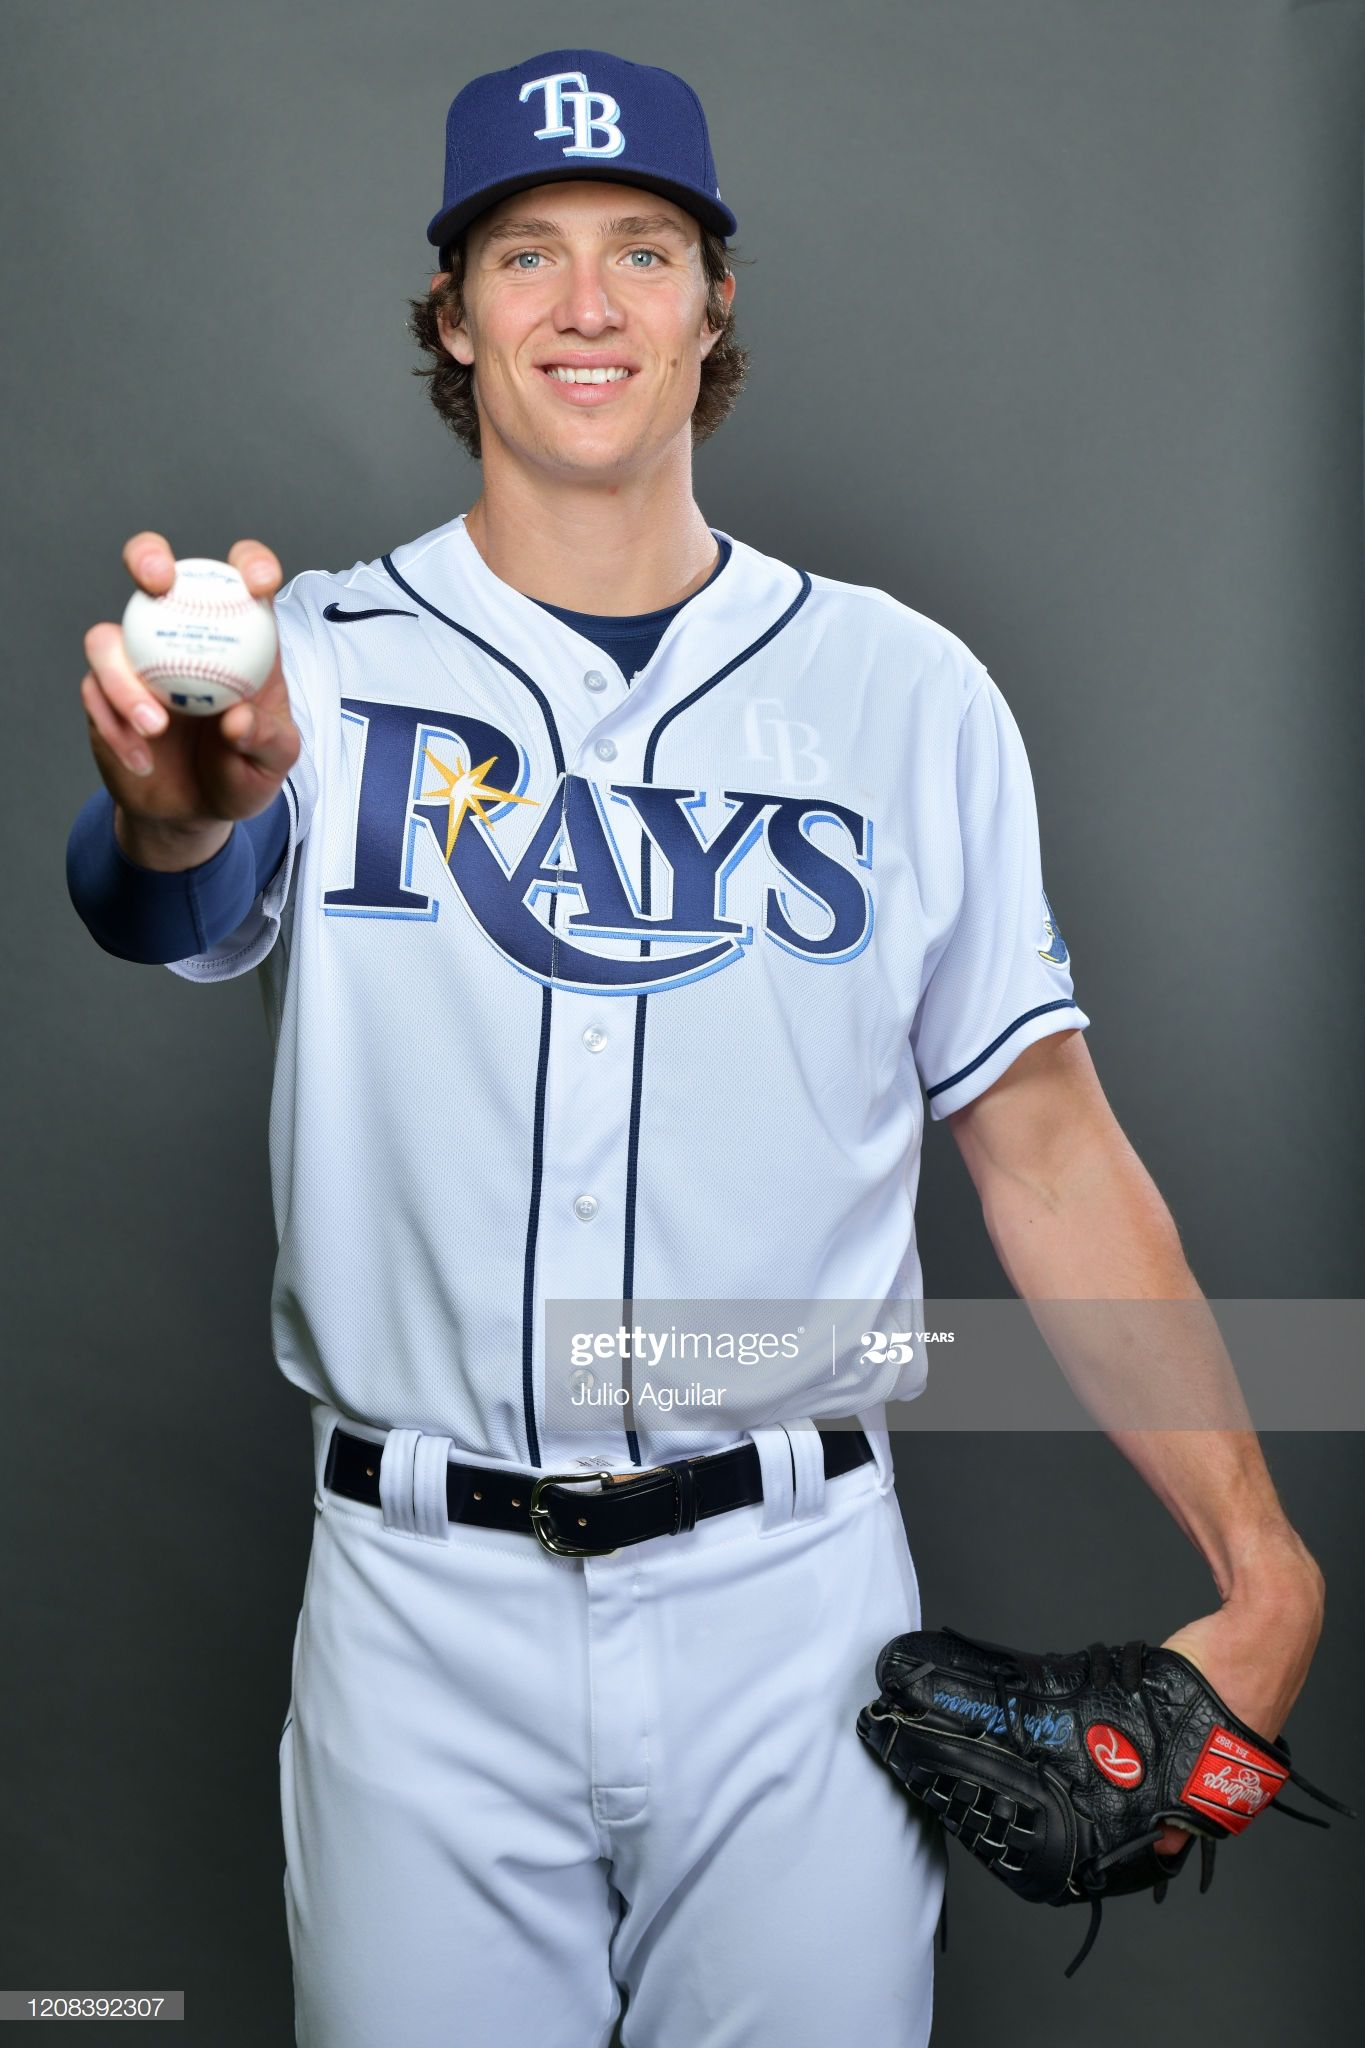 Tyler Glasnow Of The Tampa Bay Rays Poses During Photo Day At In 2020 Tampa Bay Rays Tampa Bay Rays Baseball Tampa Bay